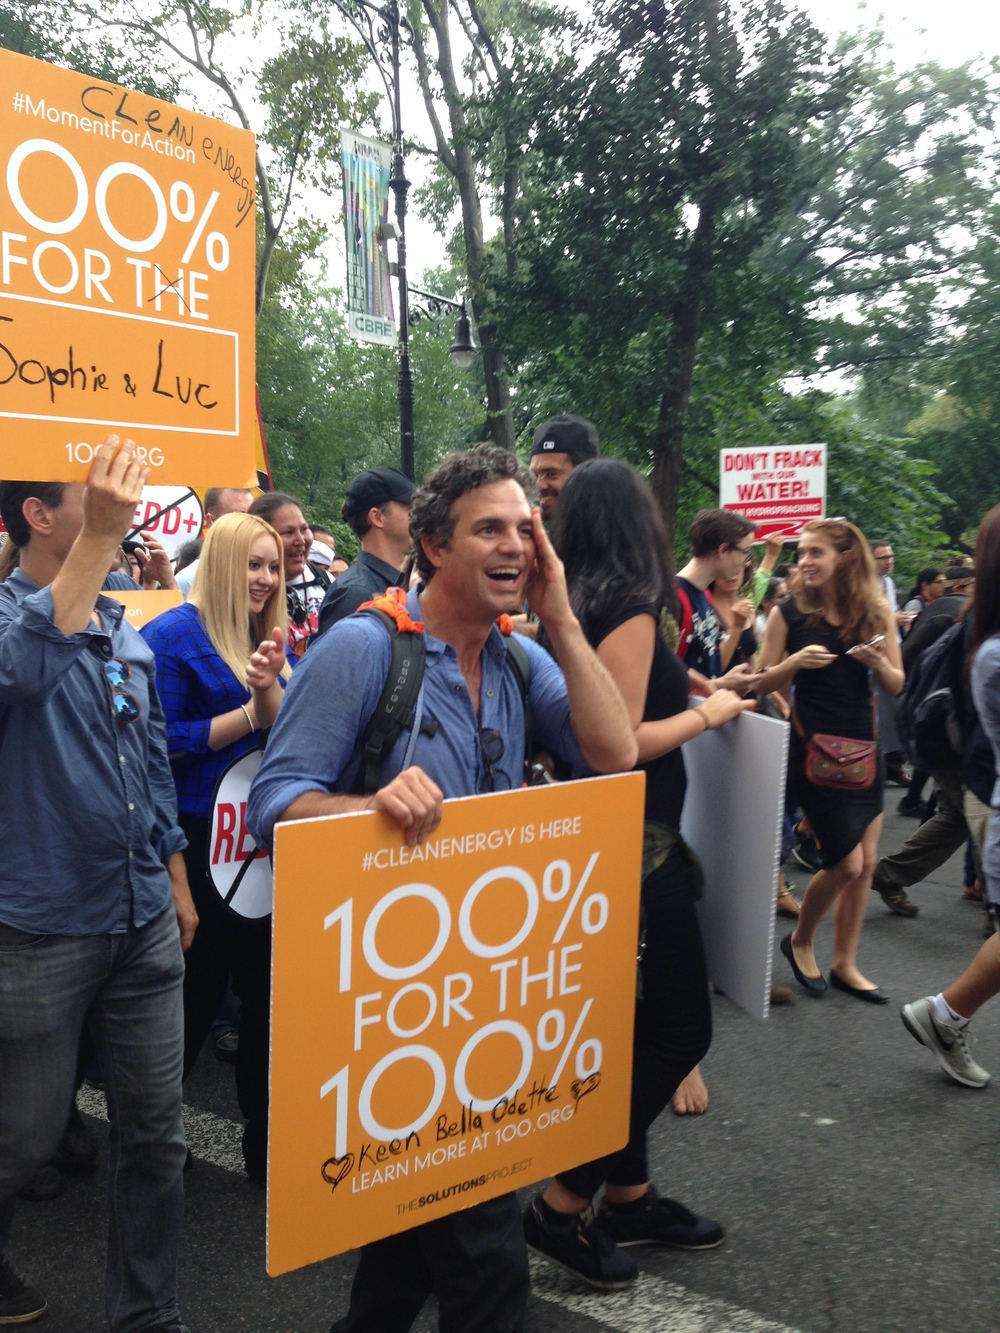 Mark Ruffalo marching for clean energy.